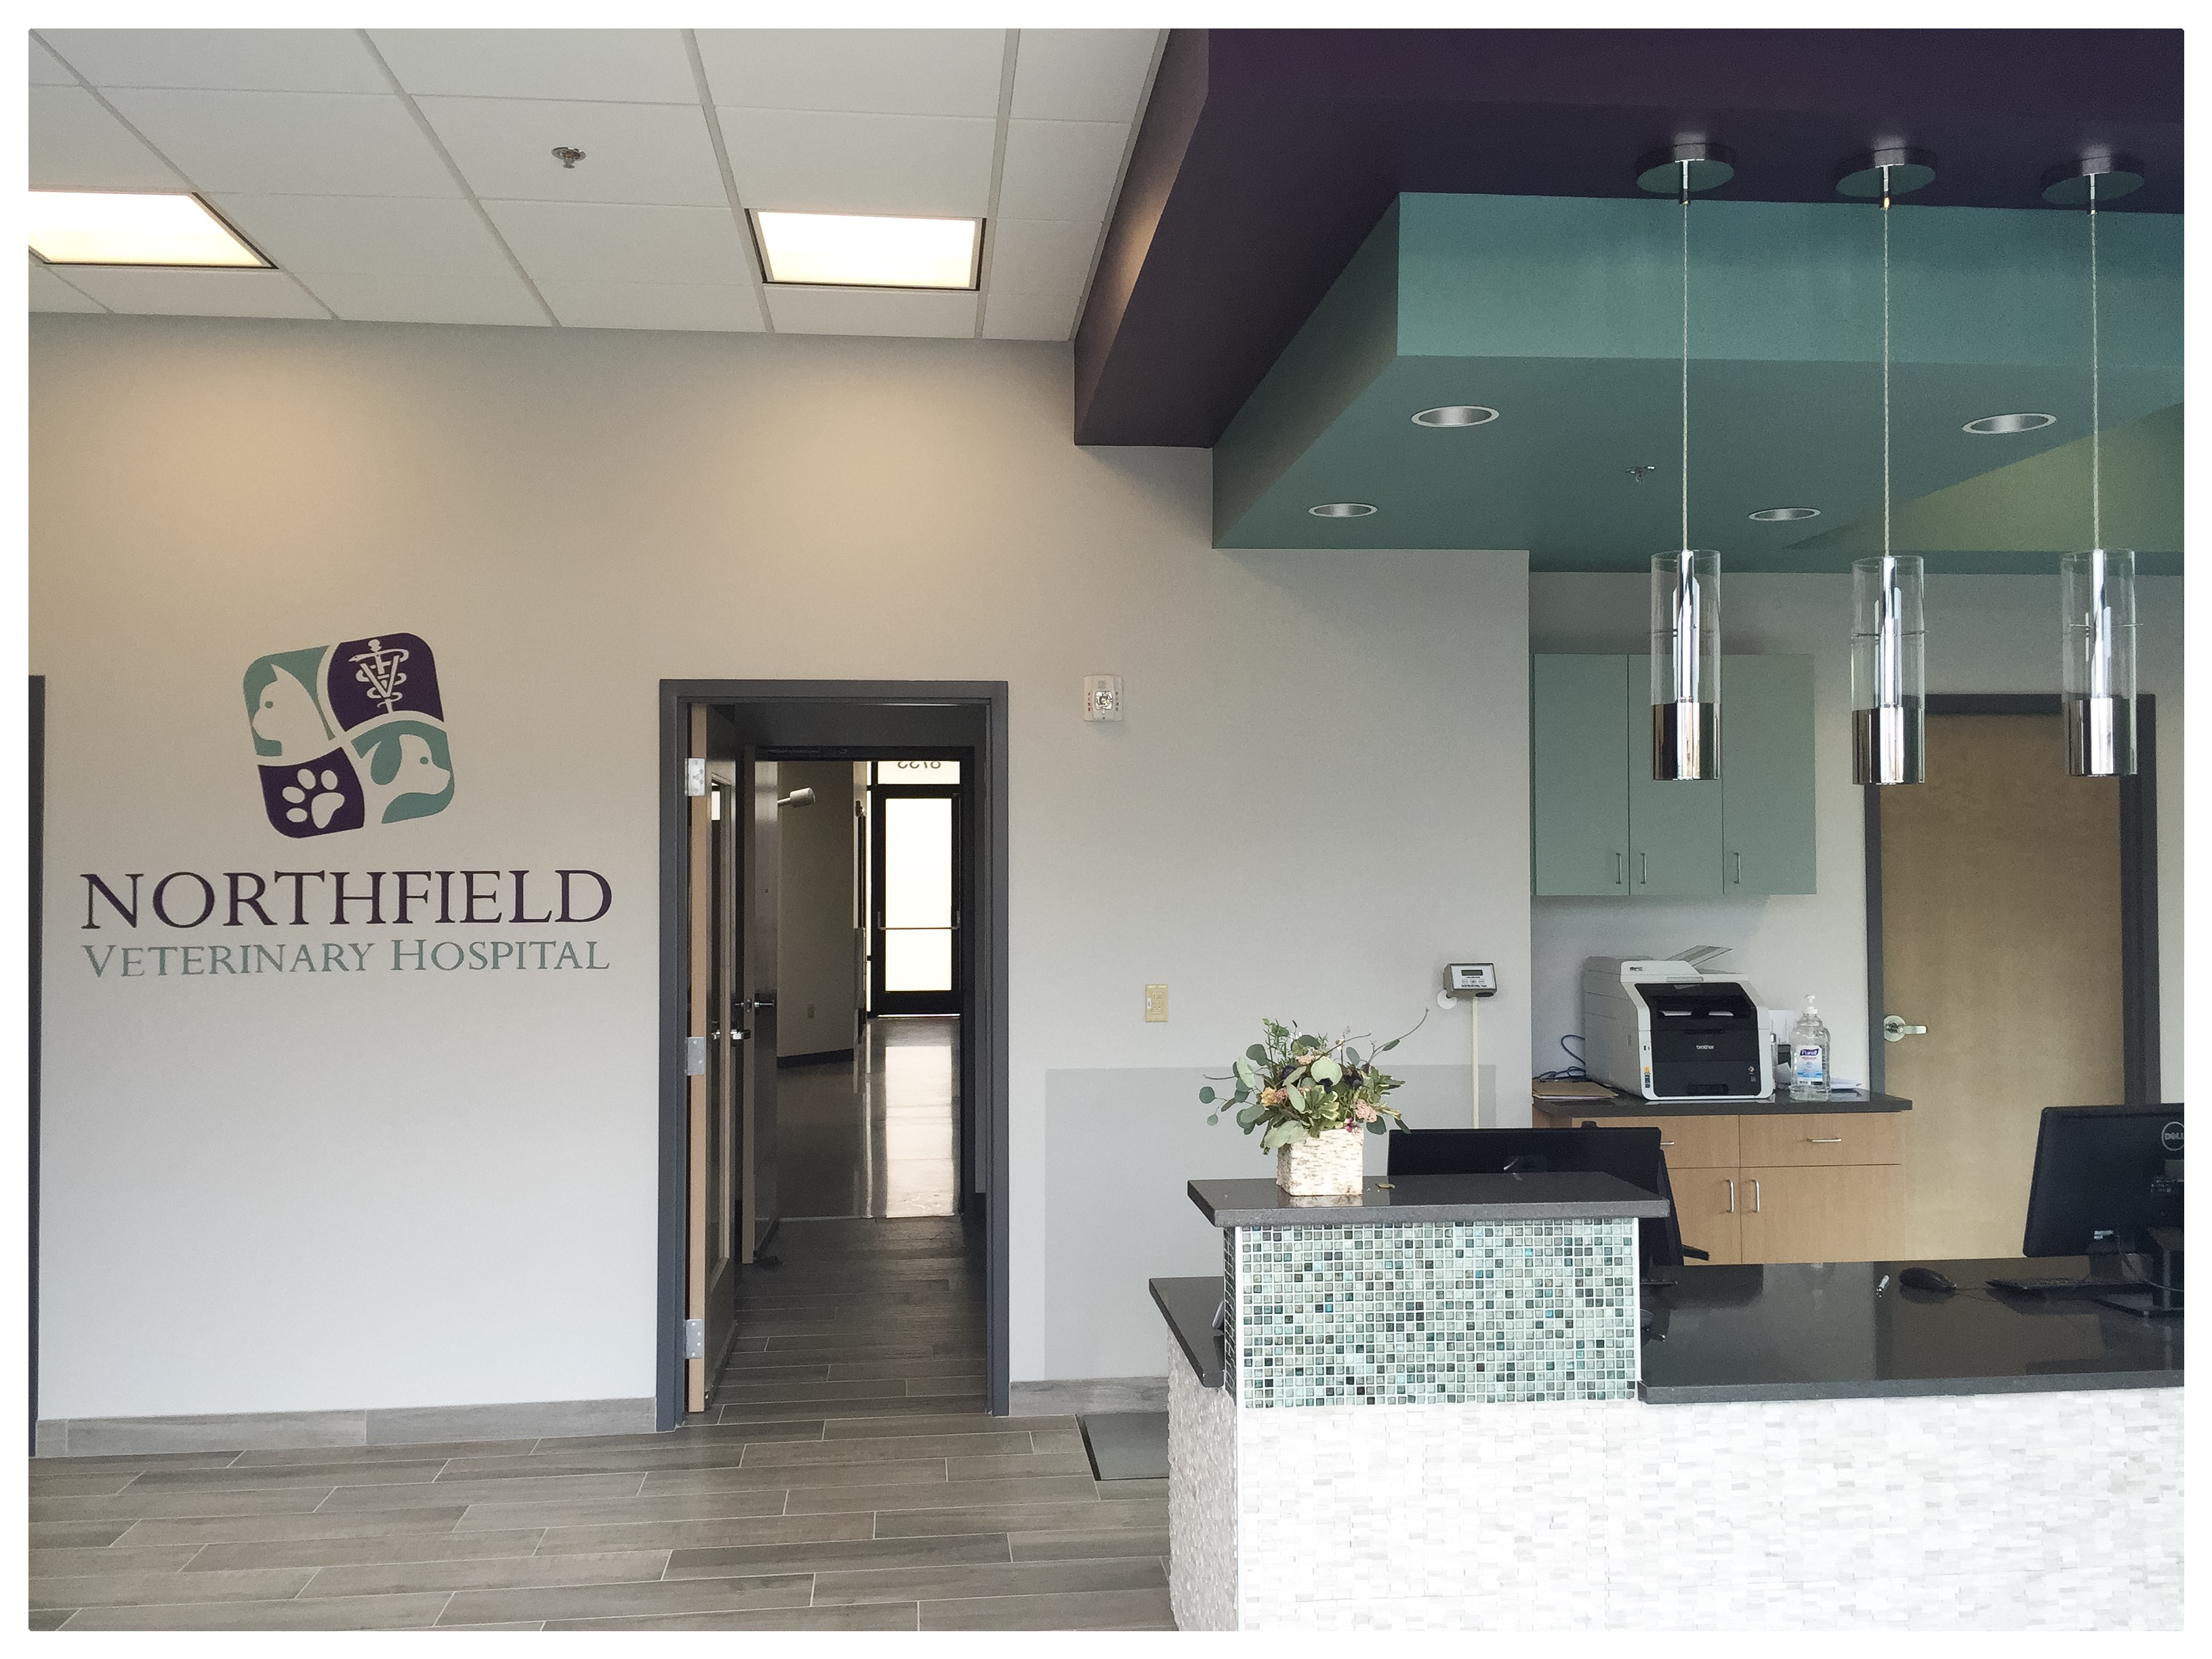 Northfields Veterinary Hospital logo